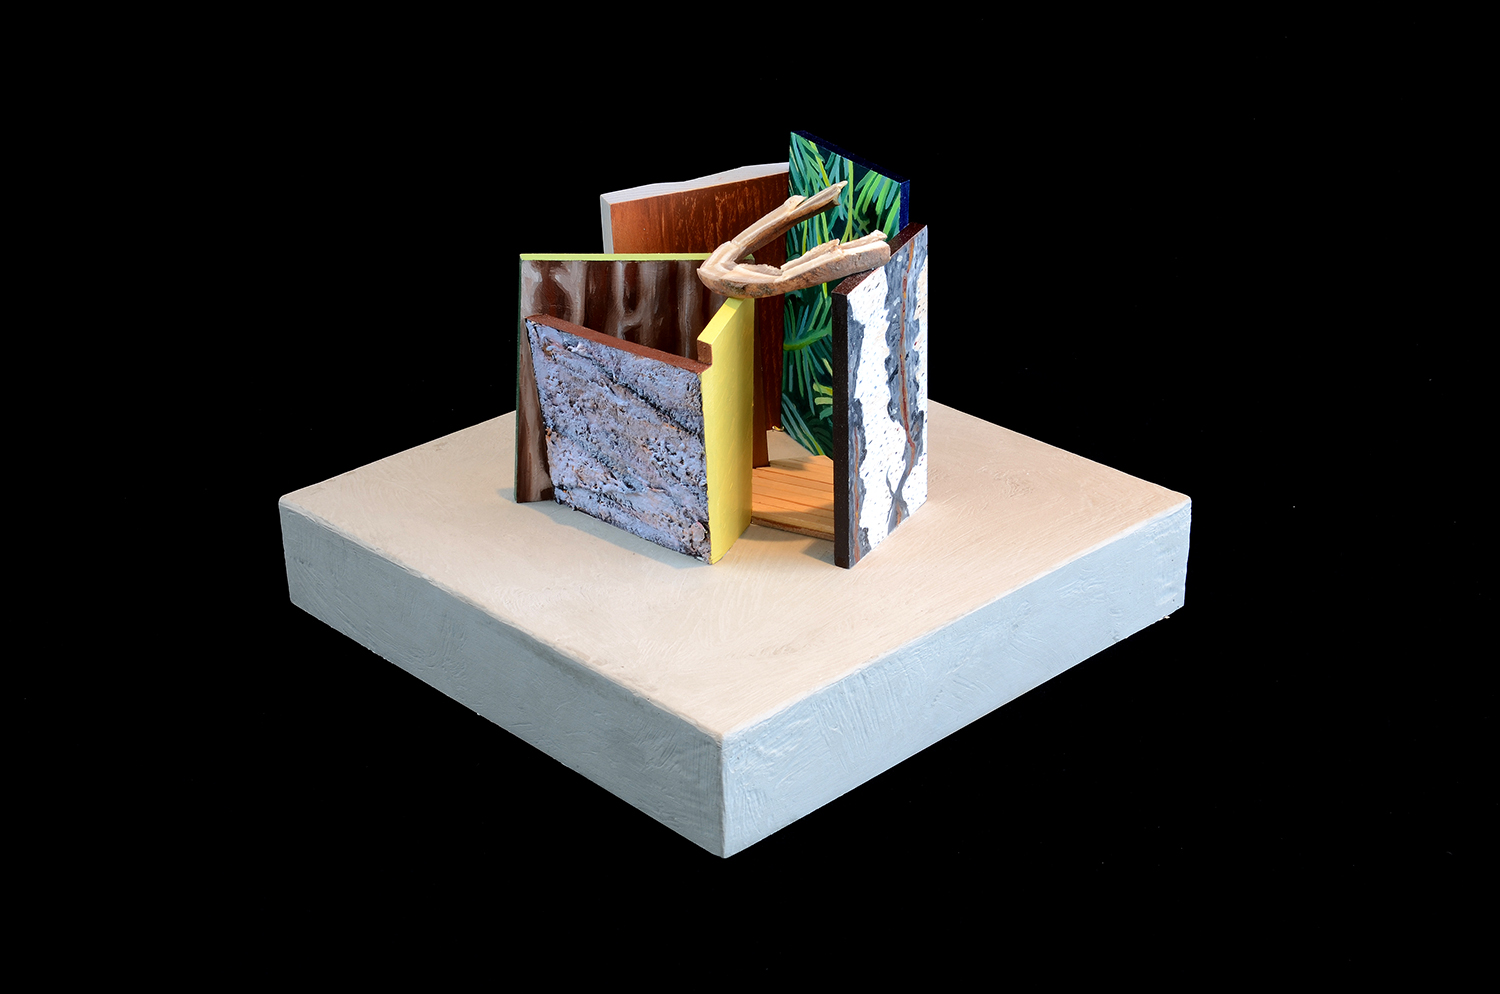 """Wyo Junctures: Hidden Corral. 2014.  Wood/Mixed Media/Oil. Shown at the Kirkland Art Center in a group show of participants from the Brush Creek Ranch Residency called """"All Nine Legs"""". This maquette was 10""""x 10""""x 8""""."""